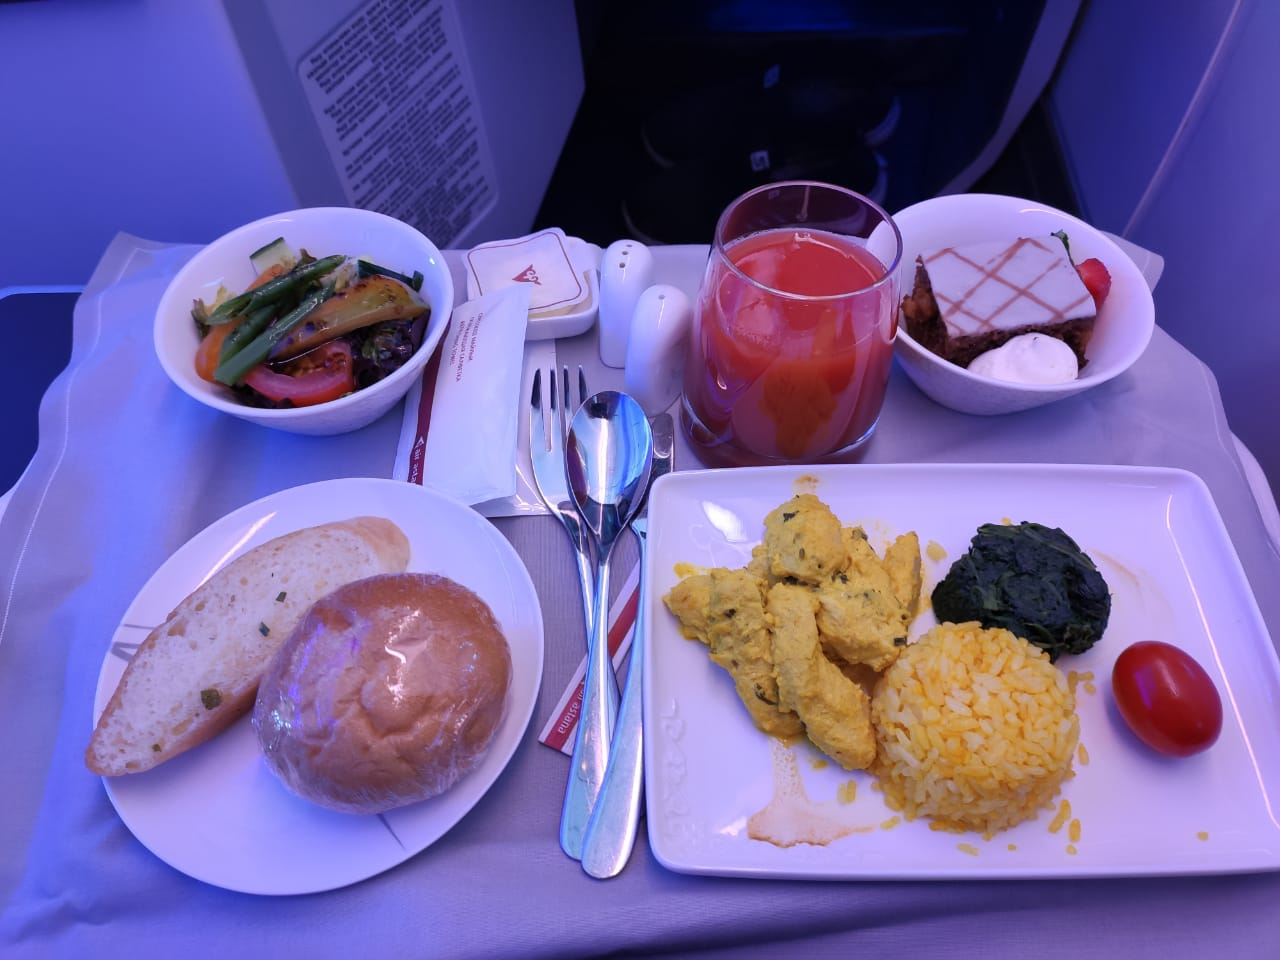 Meals in business class Air Astana on the Kyzylorda-Almaty flight, 2021